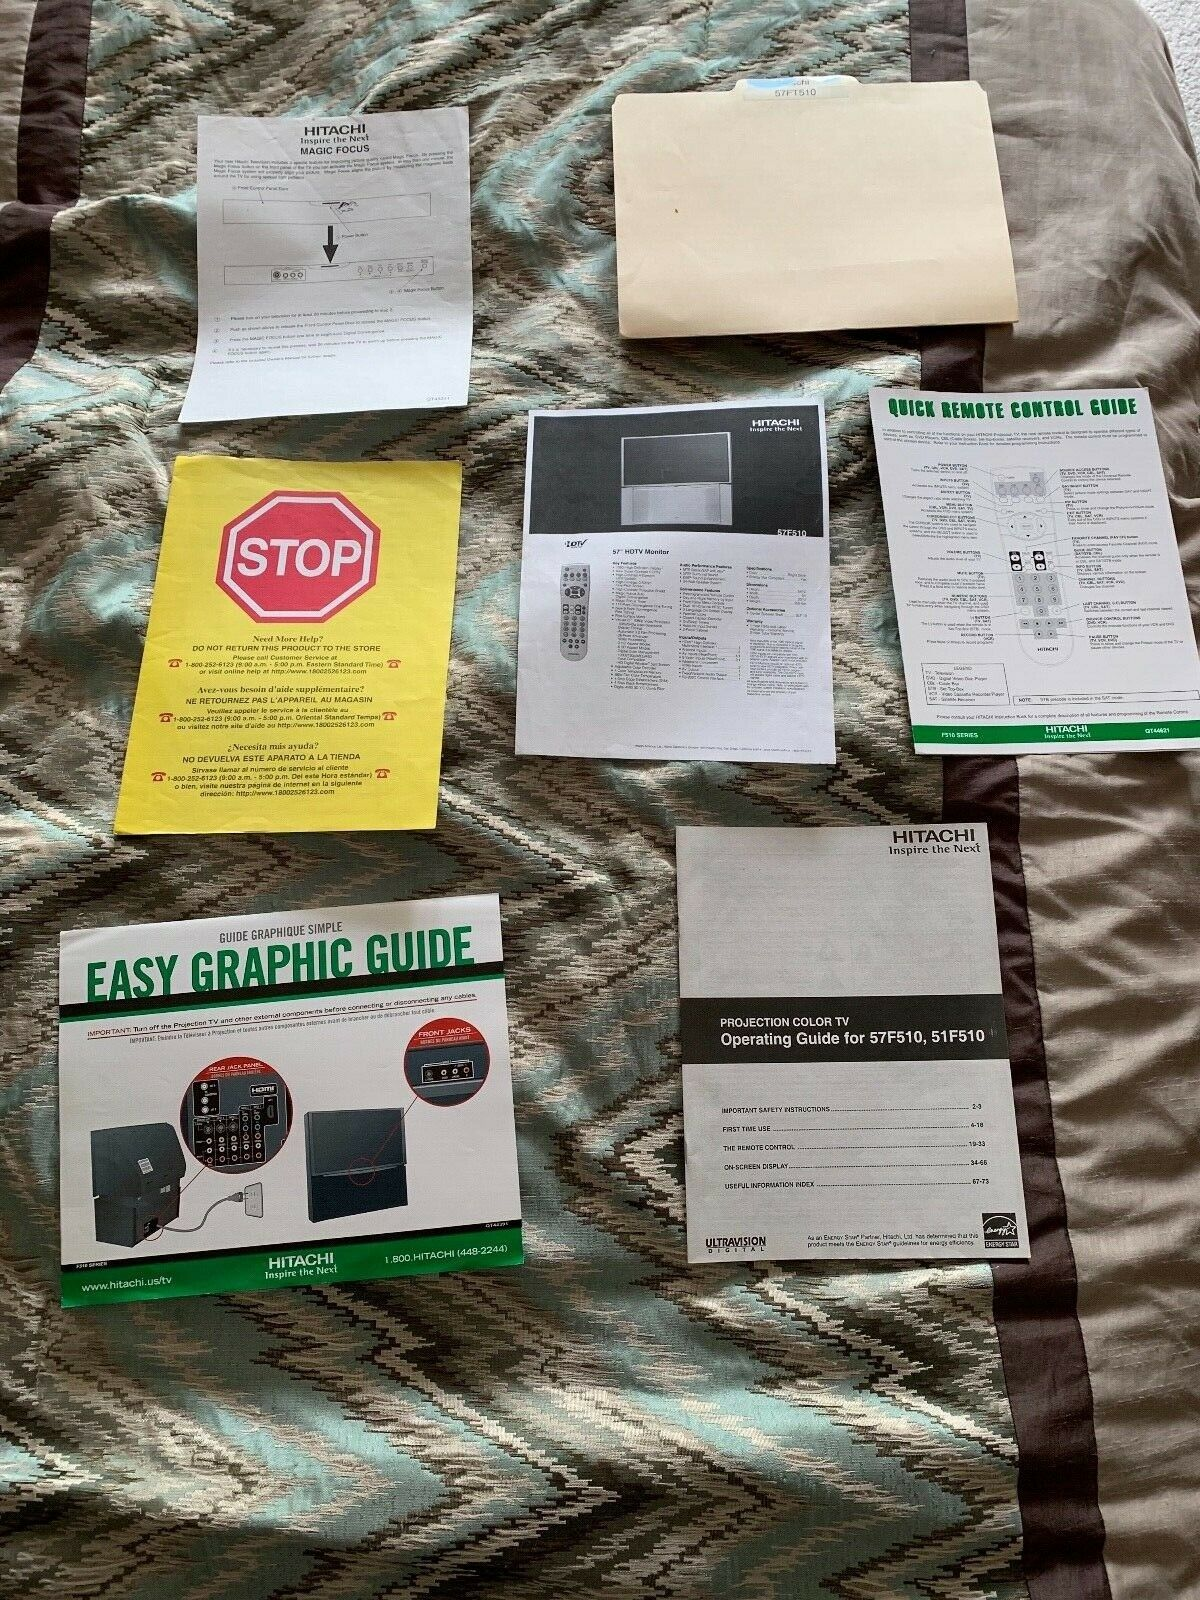 HARD TO FIND! Hitachi 57F510 and/or 51F510 Projection TV Original Manuals Plus